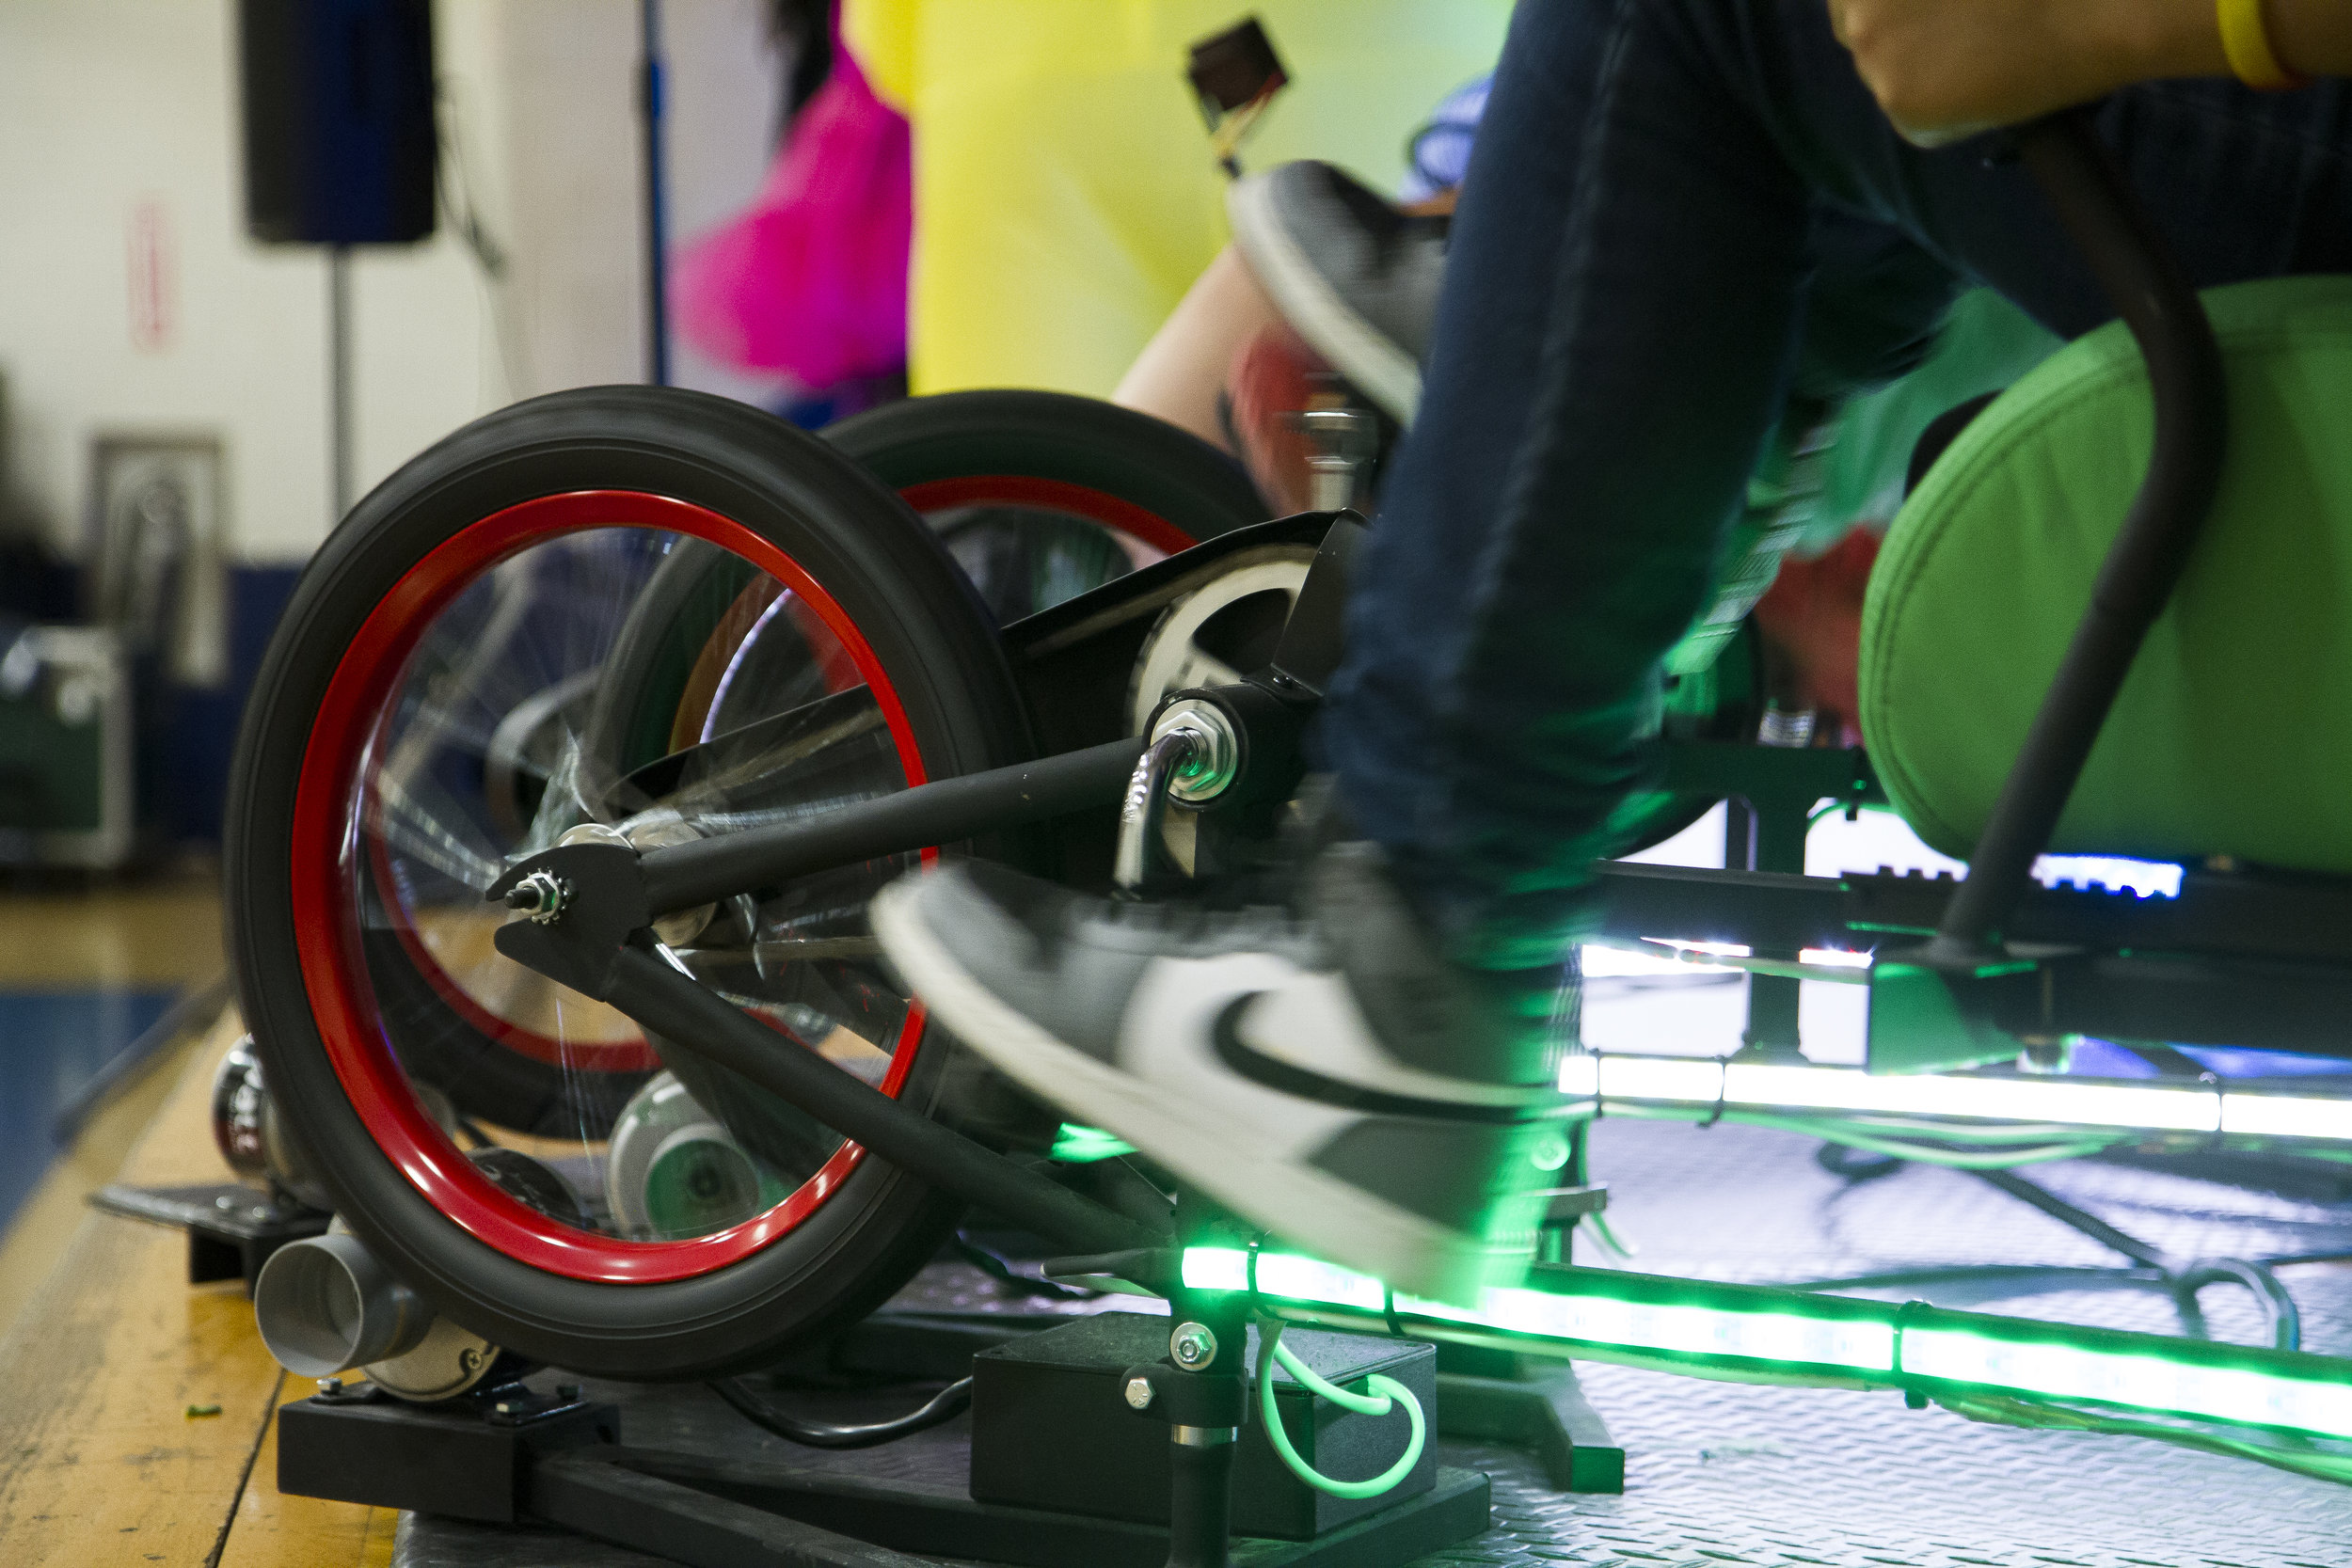 """""""The kids loved the catchy, educational music and were crazy about making clean energy with the cool bike powered system."""" - Pam McVey, Creative Arts and Science Committee, Burr School"""